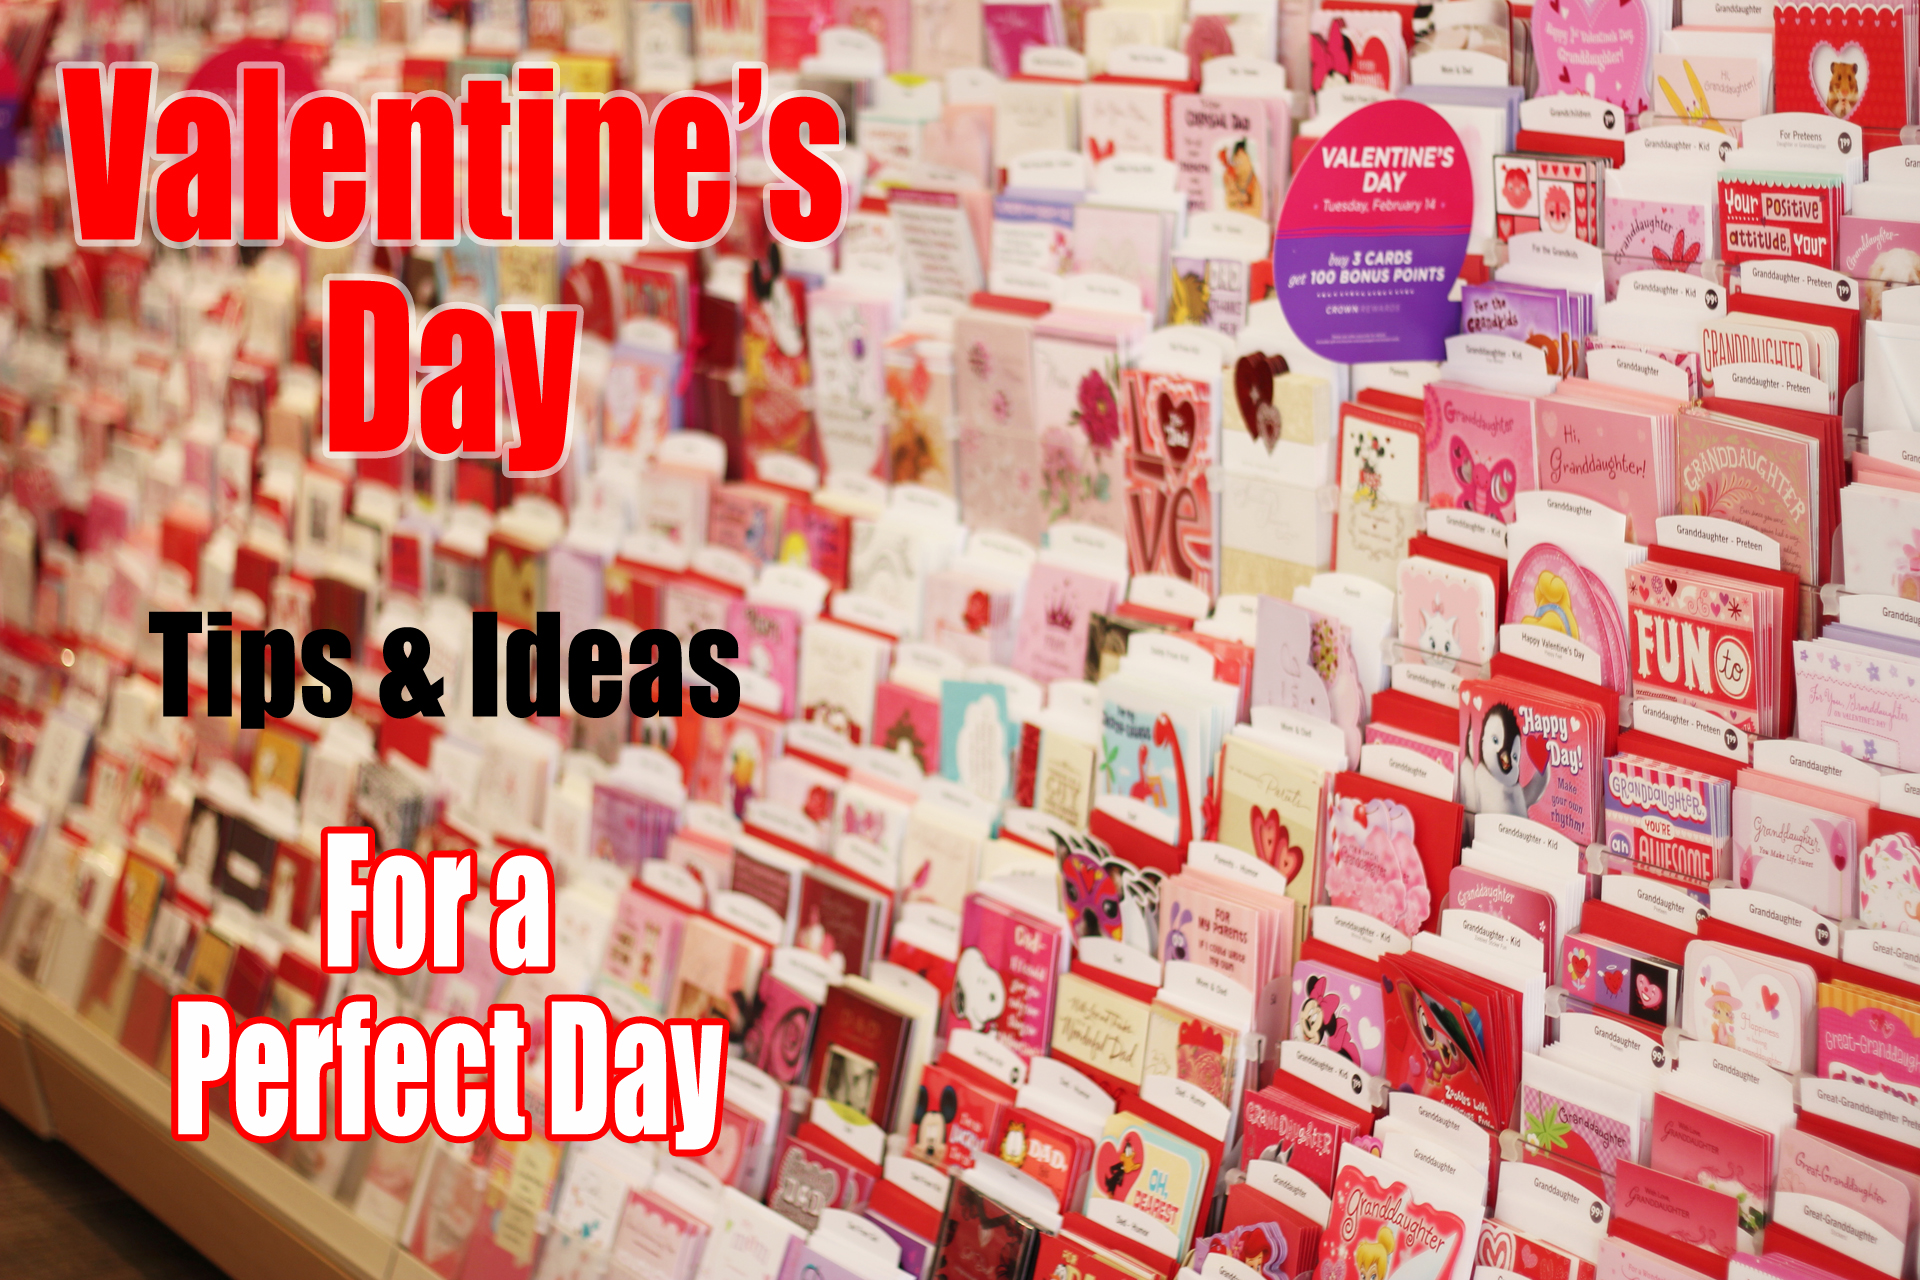 Valentine's Day: Tips & Ideas for Success